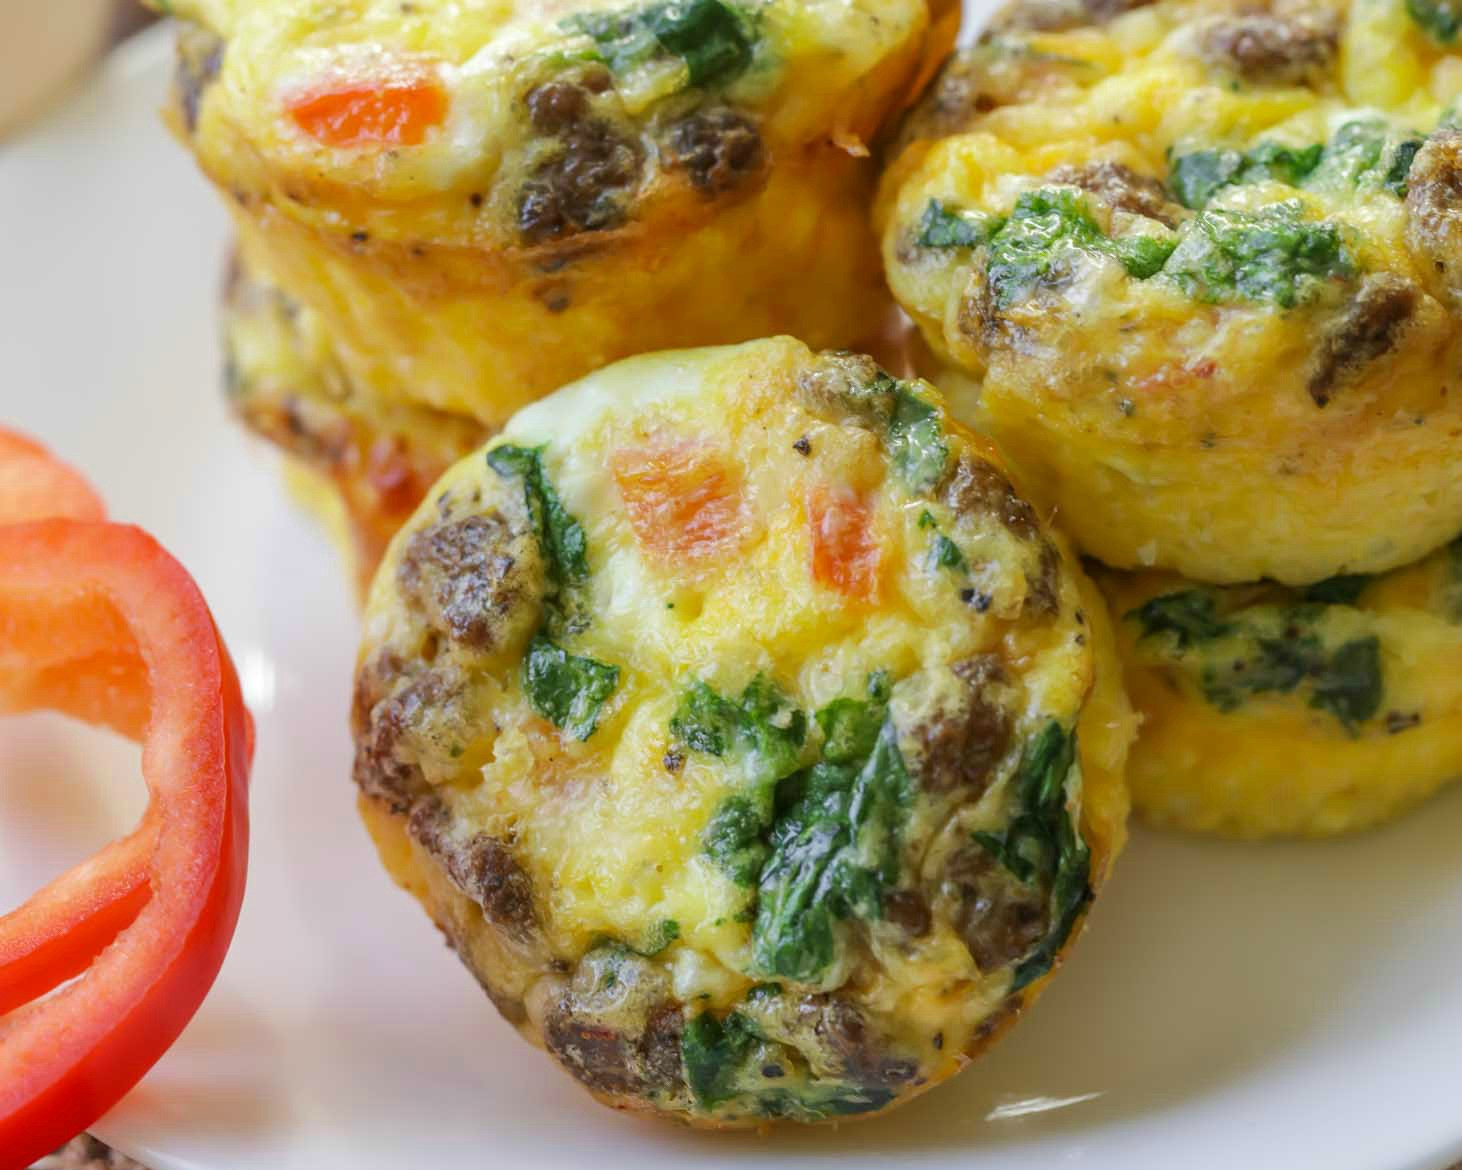 Healthy Breakfast Recipes With Eggs  Healthy Egg Muffins Recipe 110 Calories Each